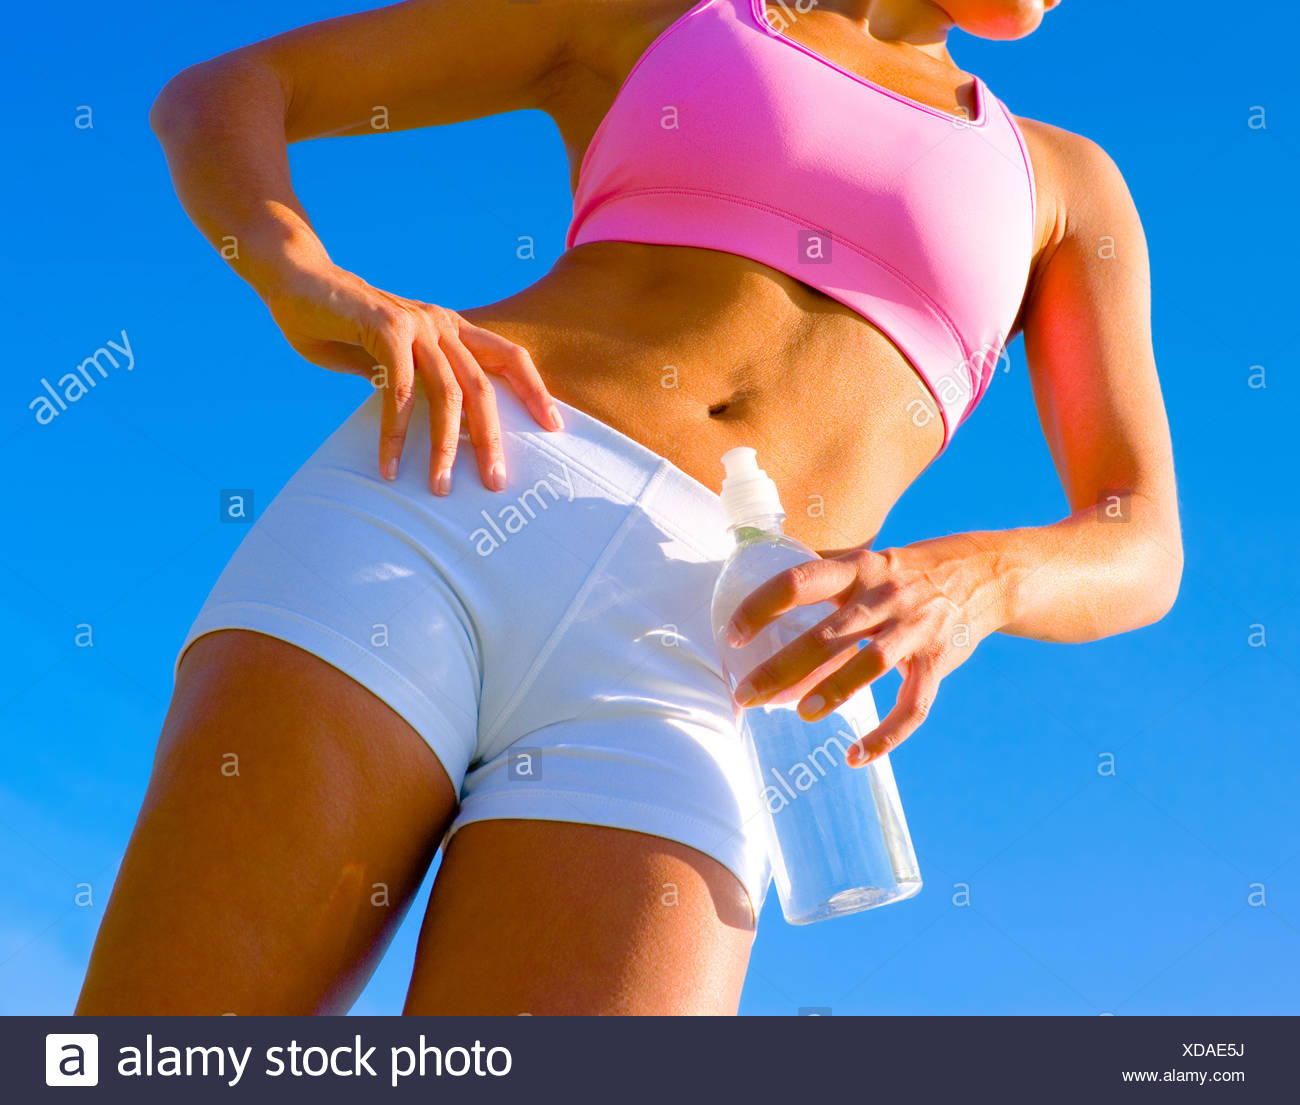 Athletic woman working out in a meadow, from a complete series of photos. - Stock Image